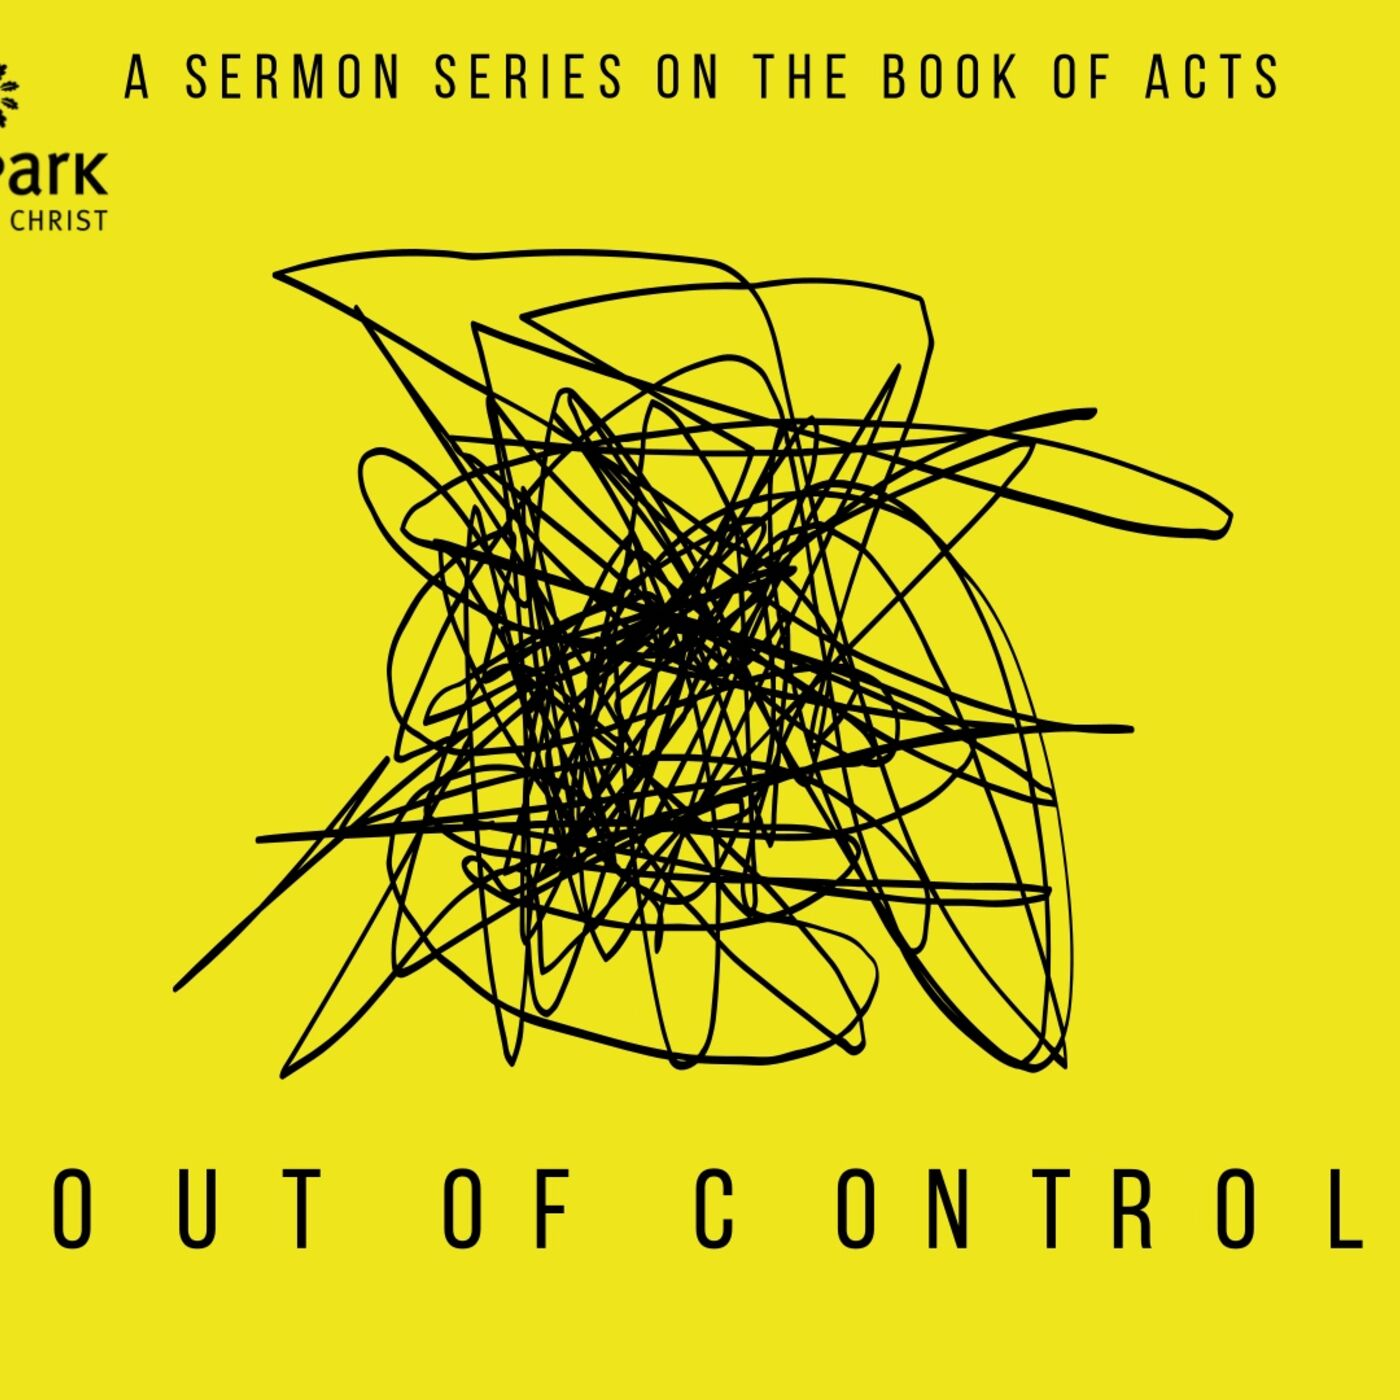 Out of Control - Week 8